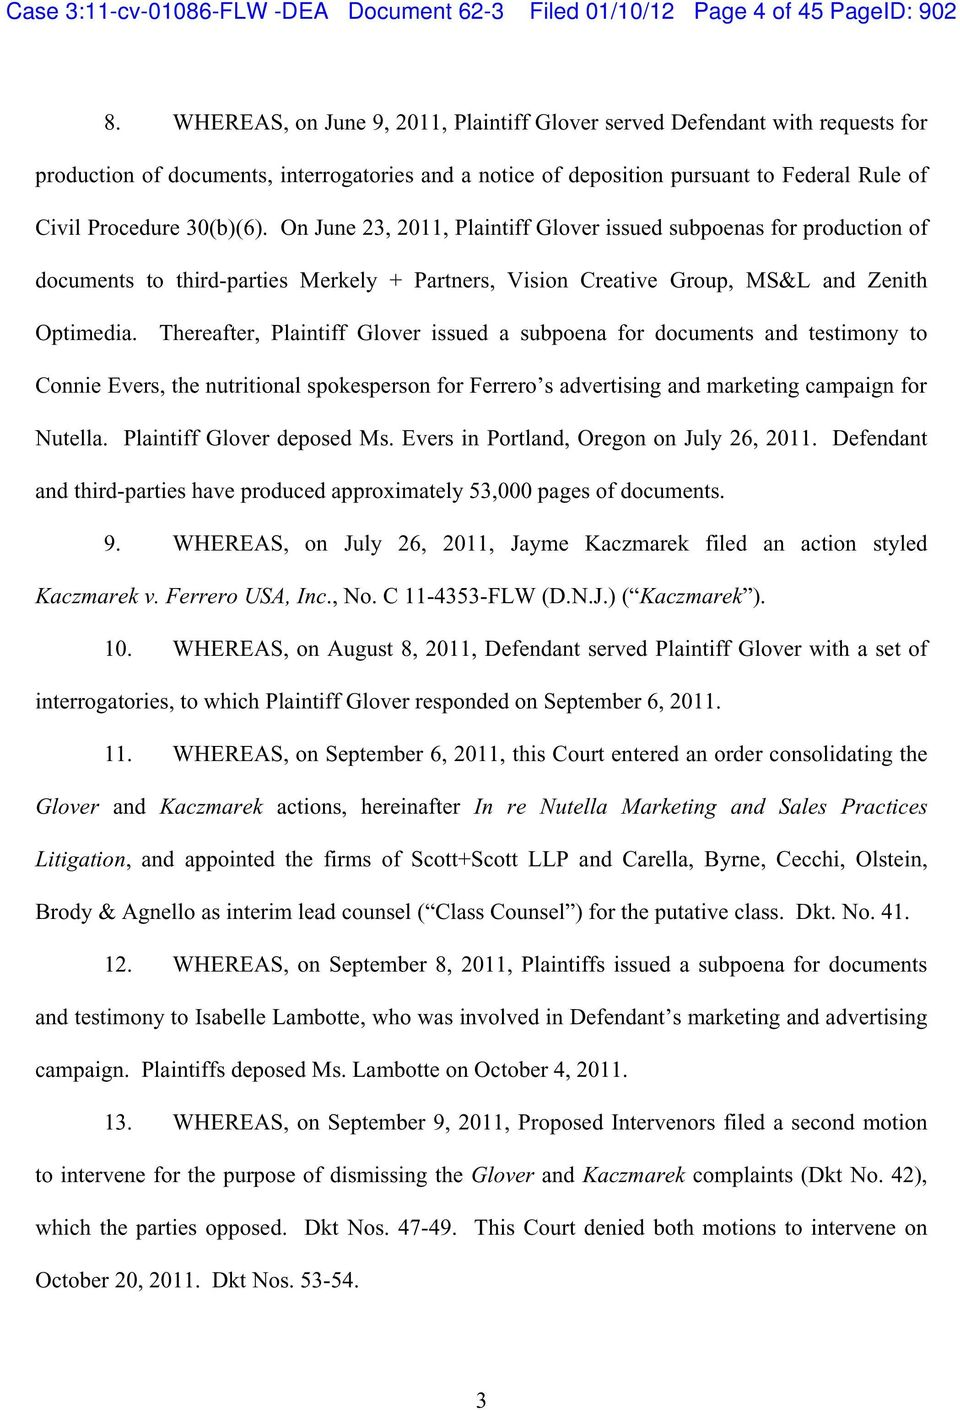 On June 23, 2011, Plaintiff Glover issued subpoenas for production of documents to third-parties Merkely + Partners, Vision Creative Group, MS&L and Zenith Optimedia.